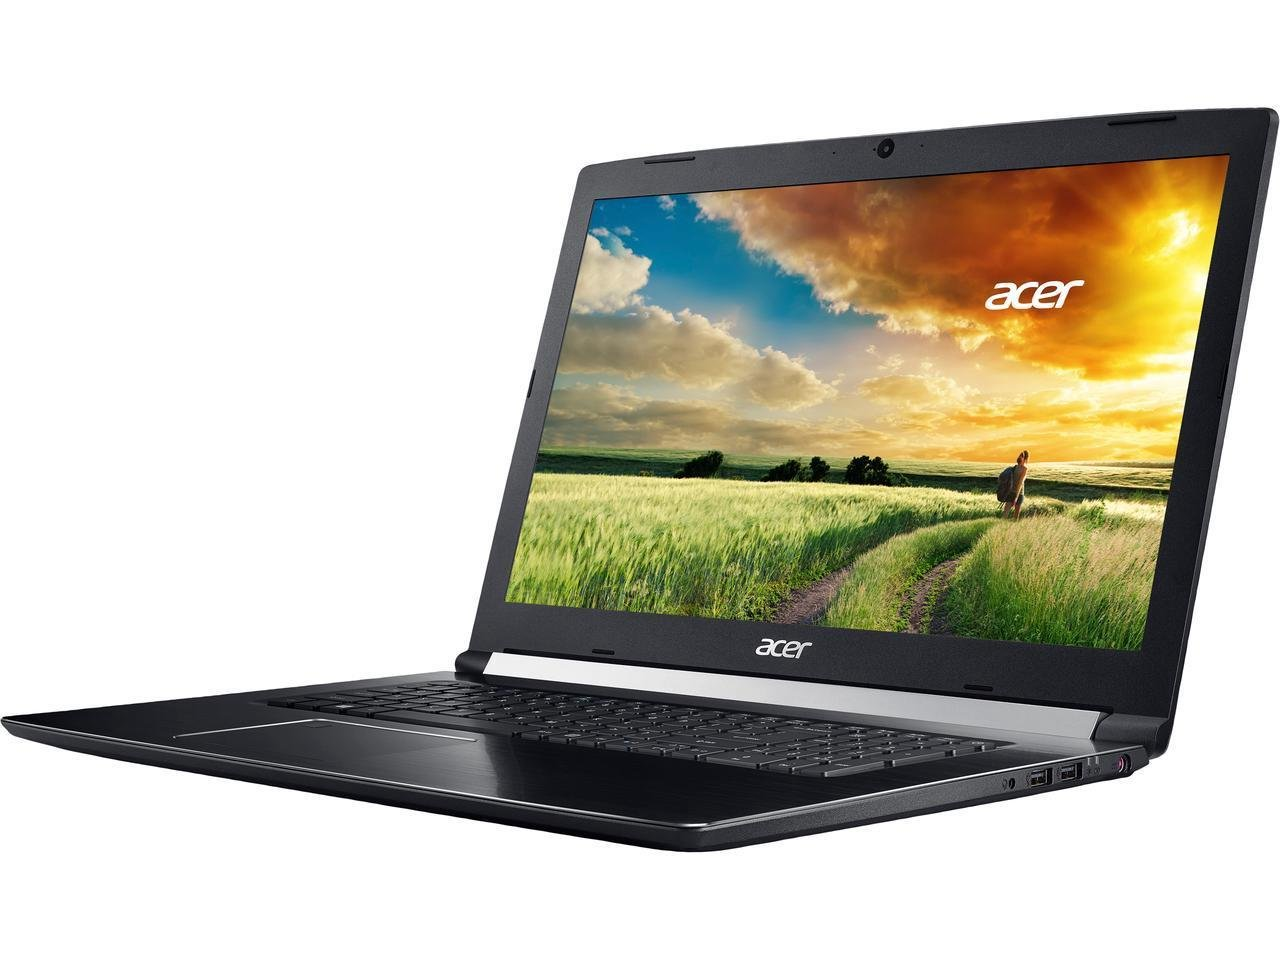 Acer Aspire  Intel Core i7, 17.3-Inch, 256GB SSD